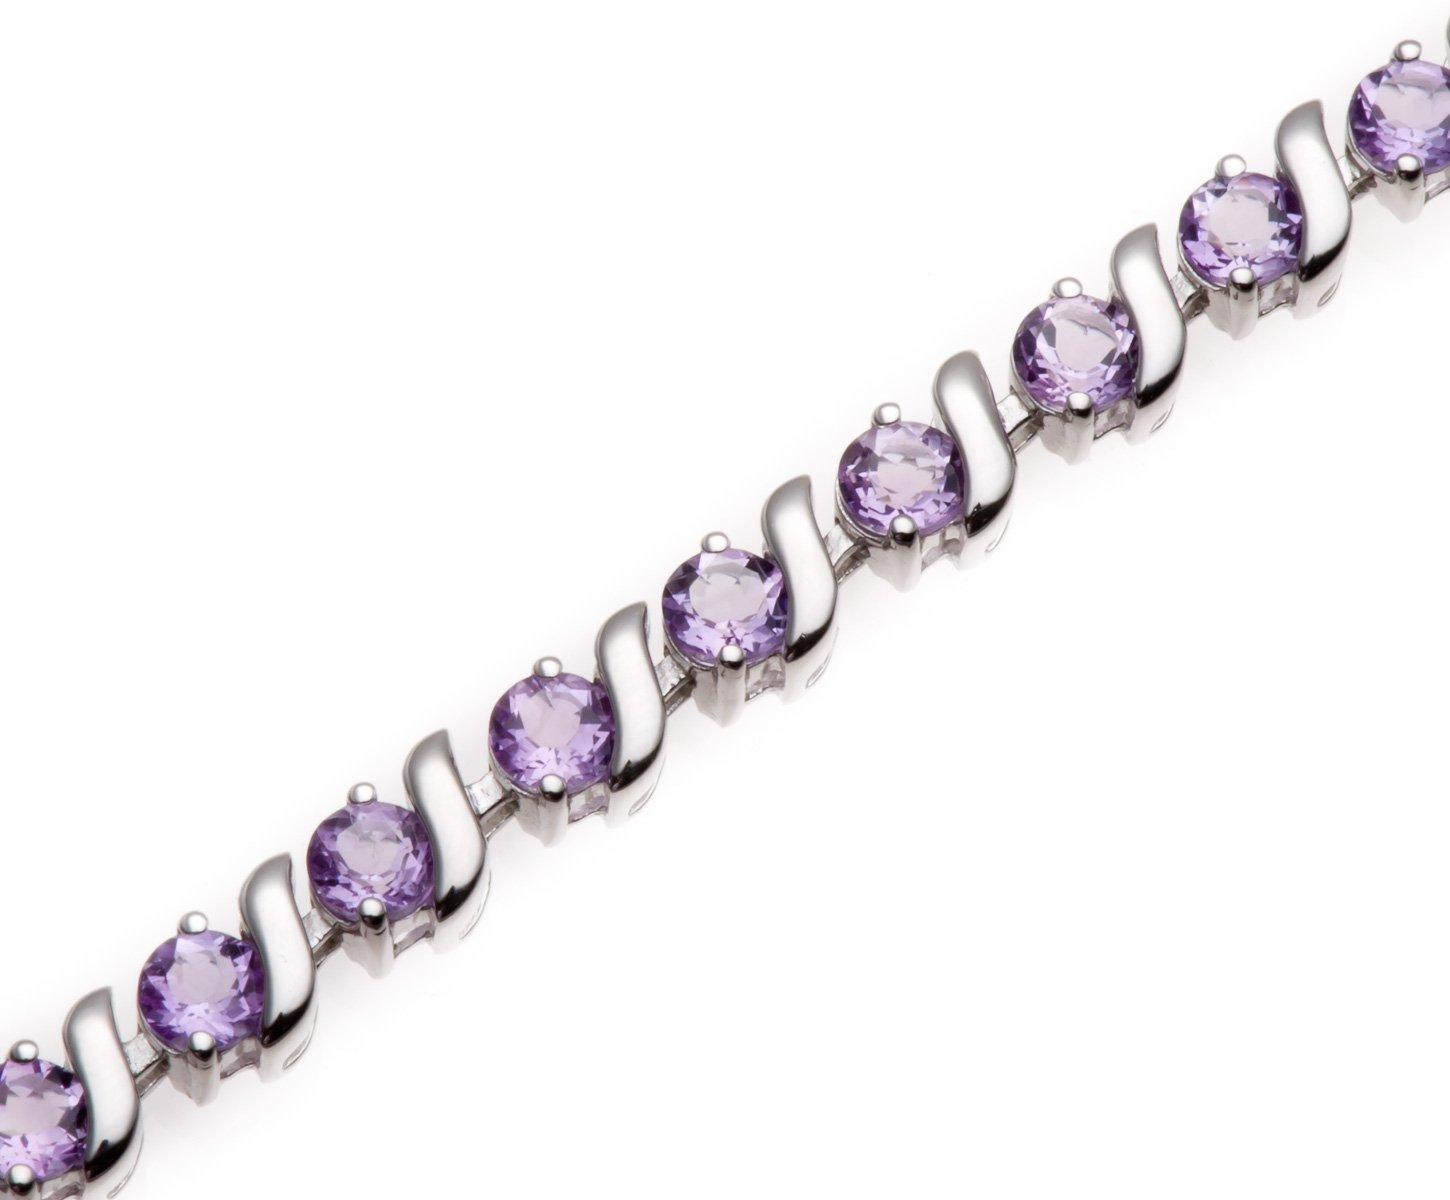 Round 4mm Genuine African Amethyst 6.34 Ct Sterling Silver ''S'' Link Bracelet 7.5 Inches